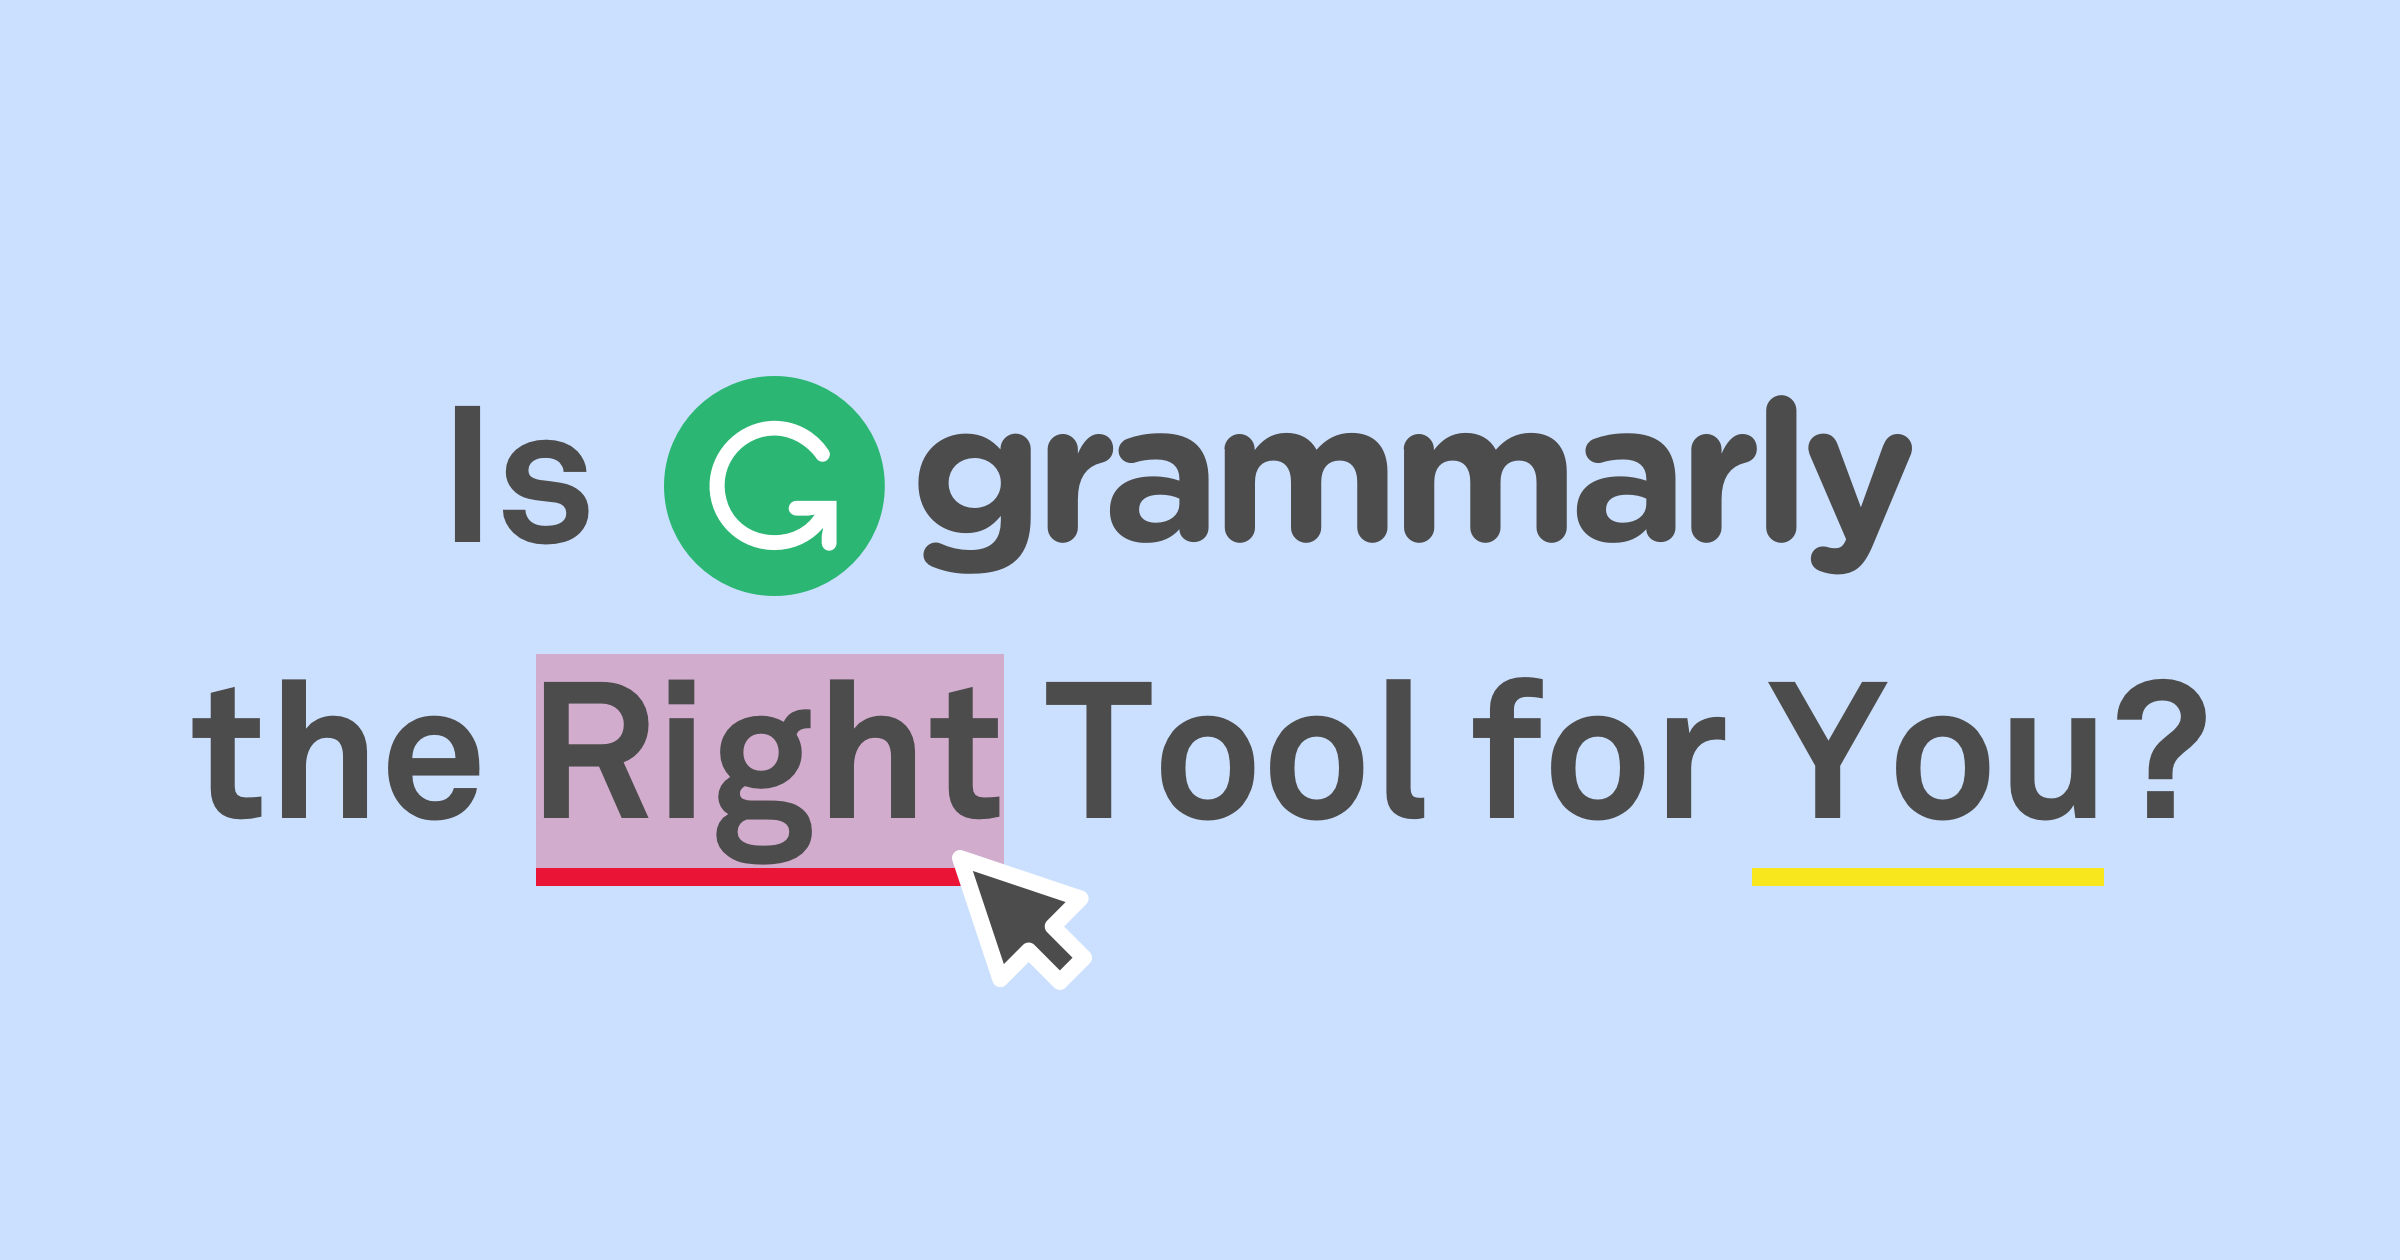 Free Stuff That Does What Grammarly Does